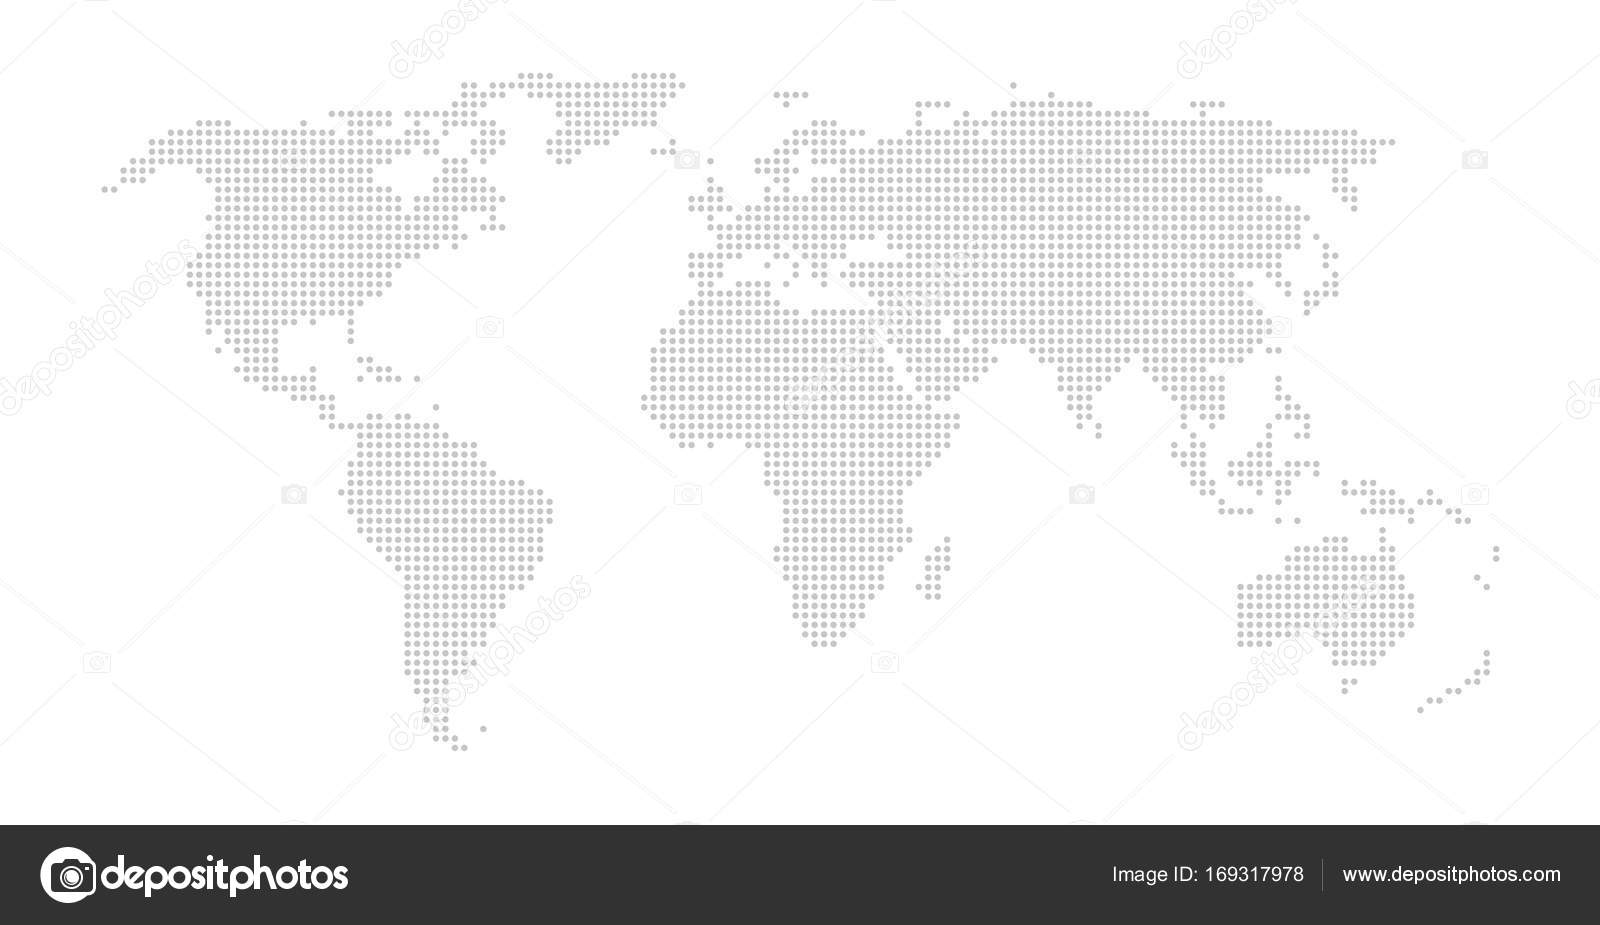 World map with grey dots stock photo keport 169317978 world map with grey dots stock photo gumiabroncs Gallery